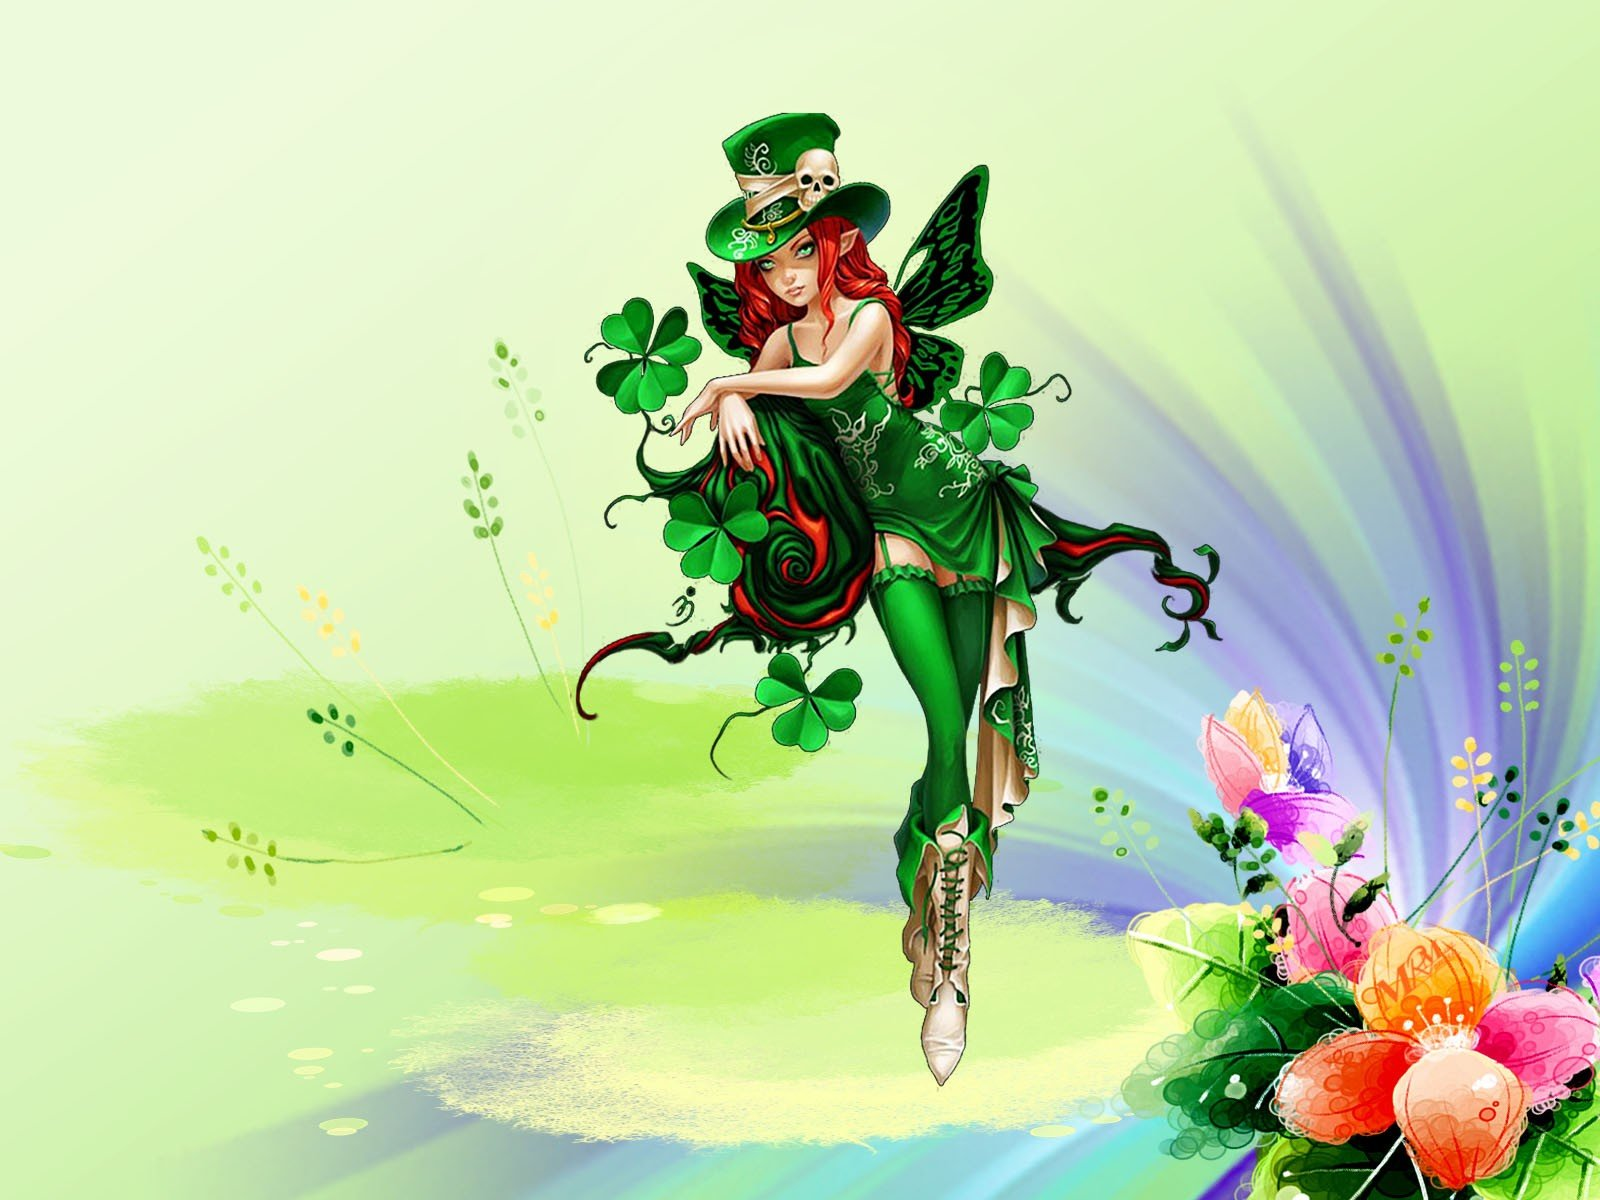 Free Download St Patrick S Day Wallpaper Id 89713 Hd 1600x1200